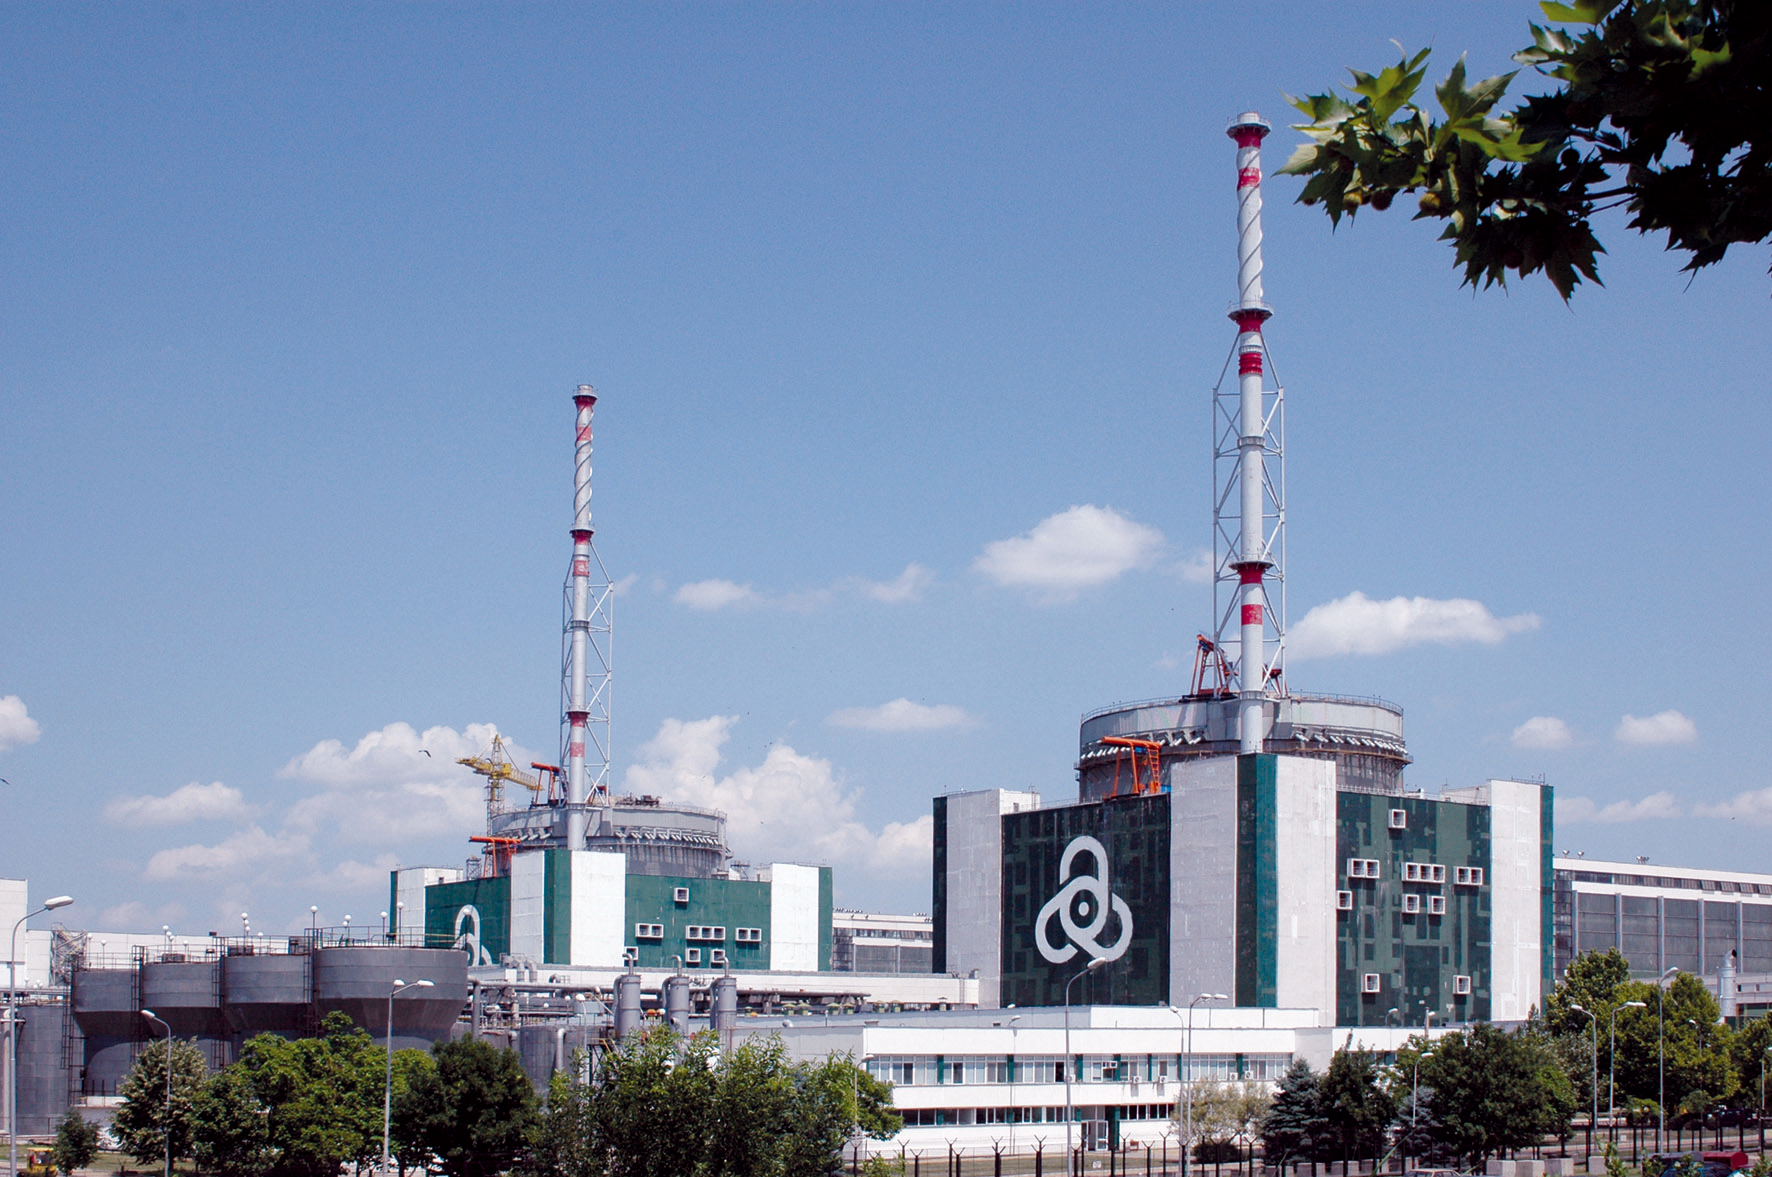 Bulgaria's nuclear power plant Kozloduy meets 2016 output target